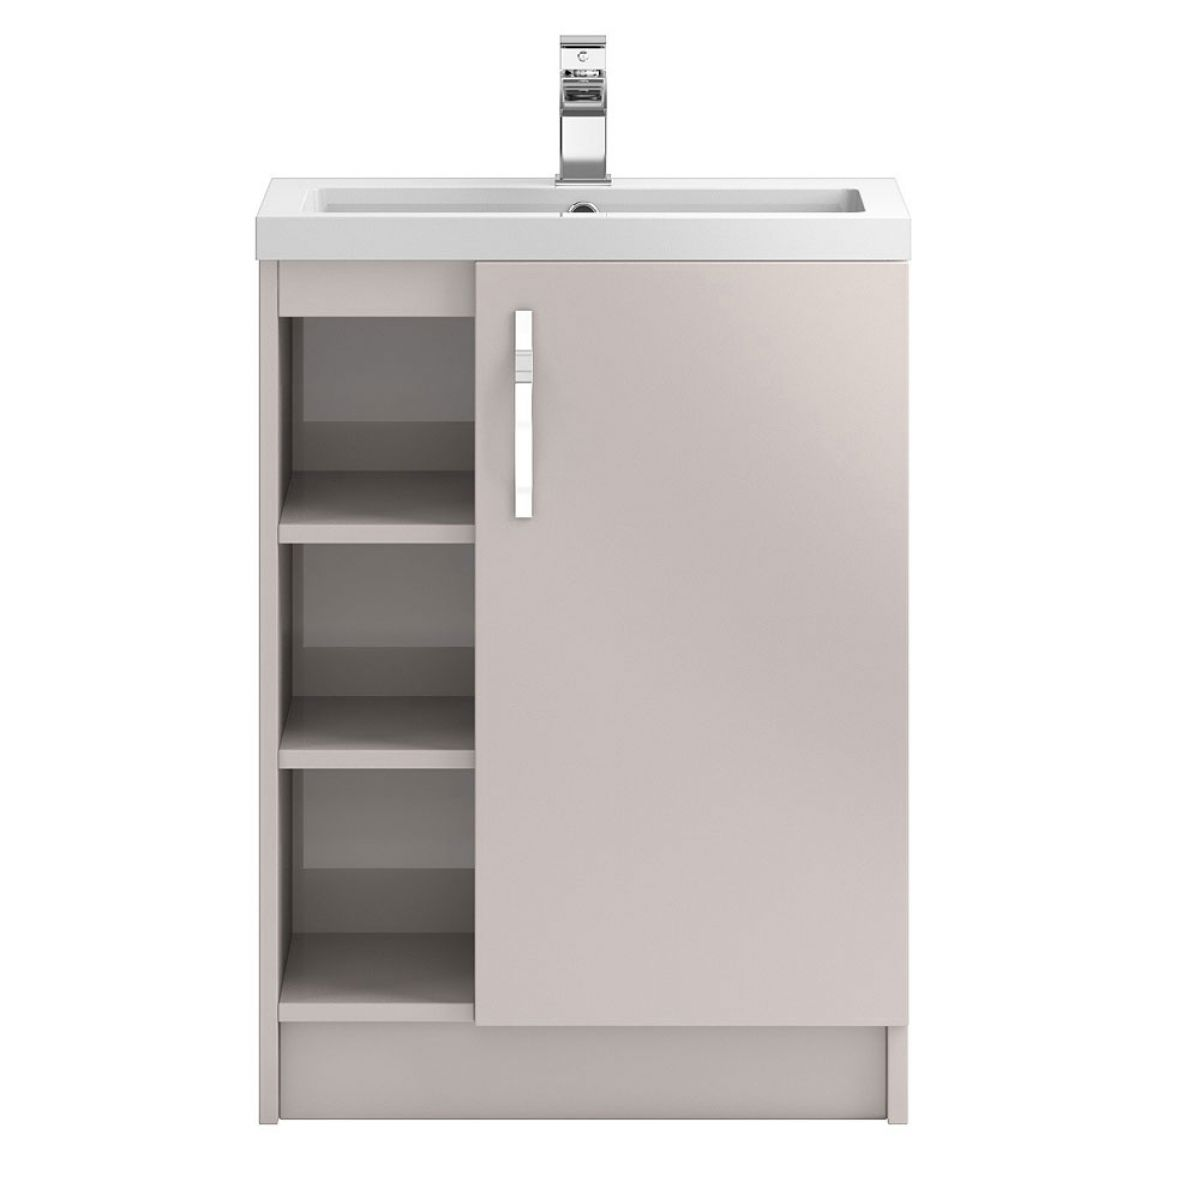 Hudson Reed Apollo Gloss Cashmere Floor Standing Open Vanity Unit 600mm